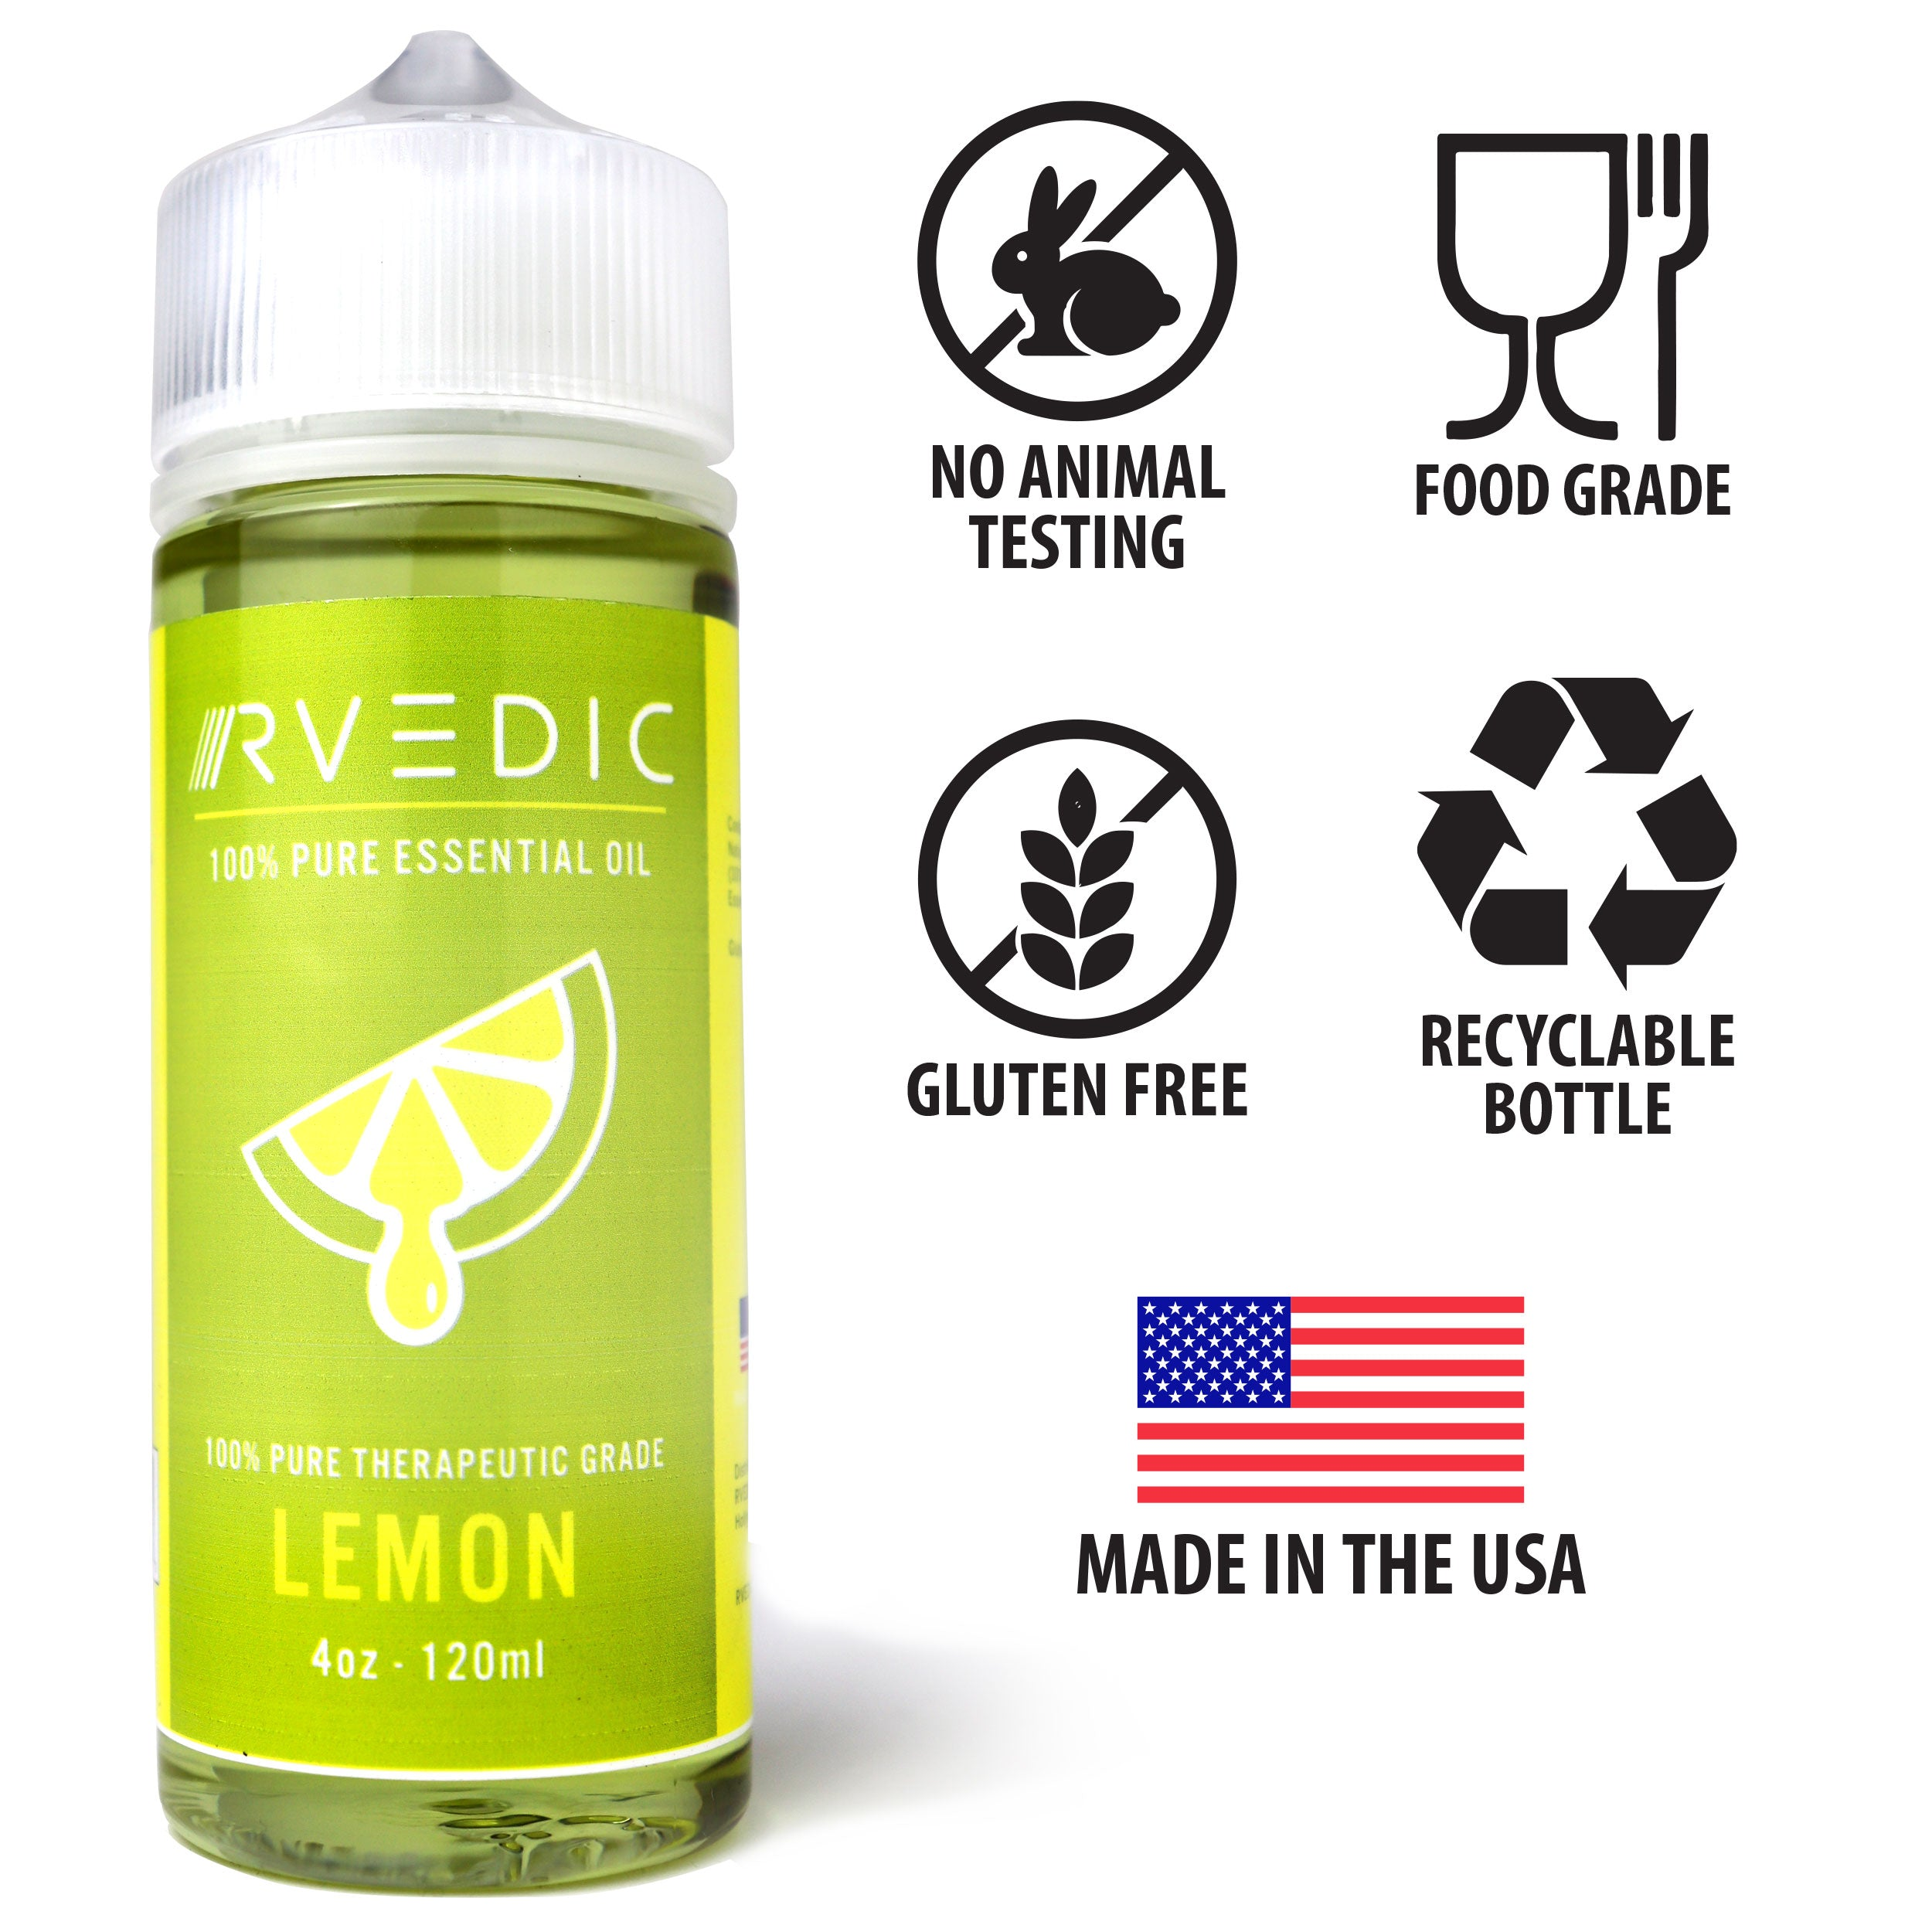 RVEDIC 100% Pure Lemon Essential Oil - 4oz (120mL)